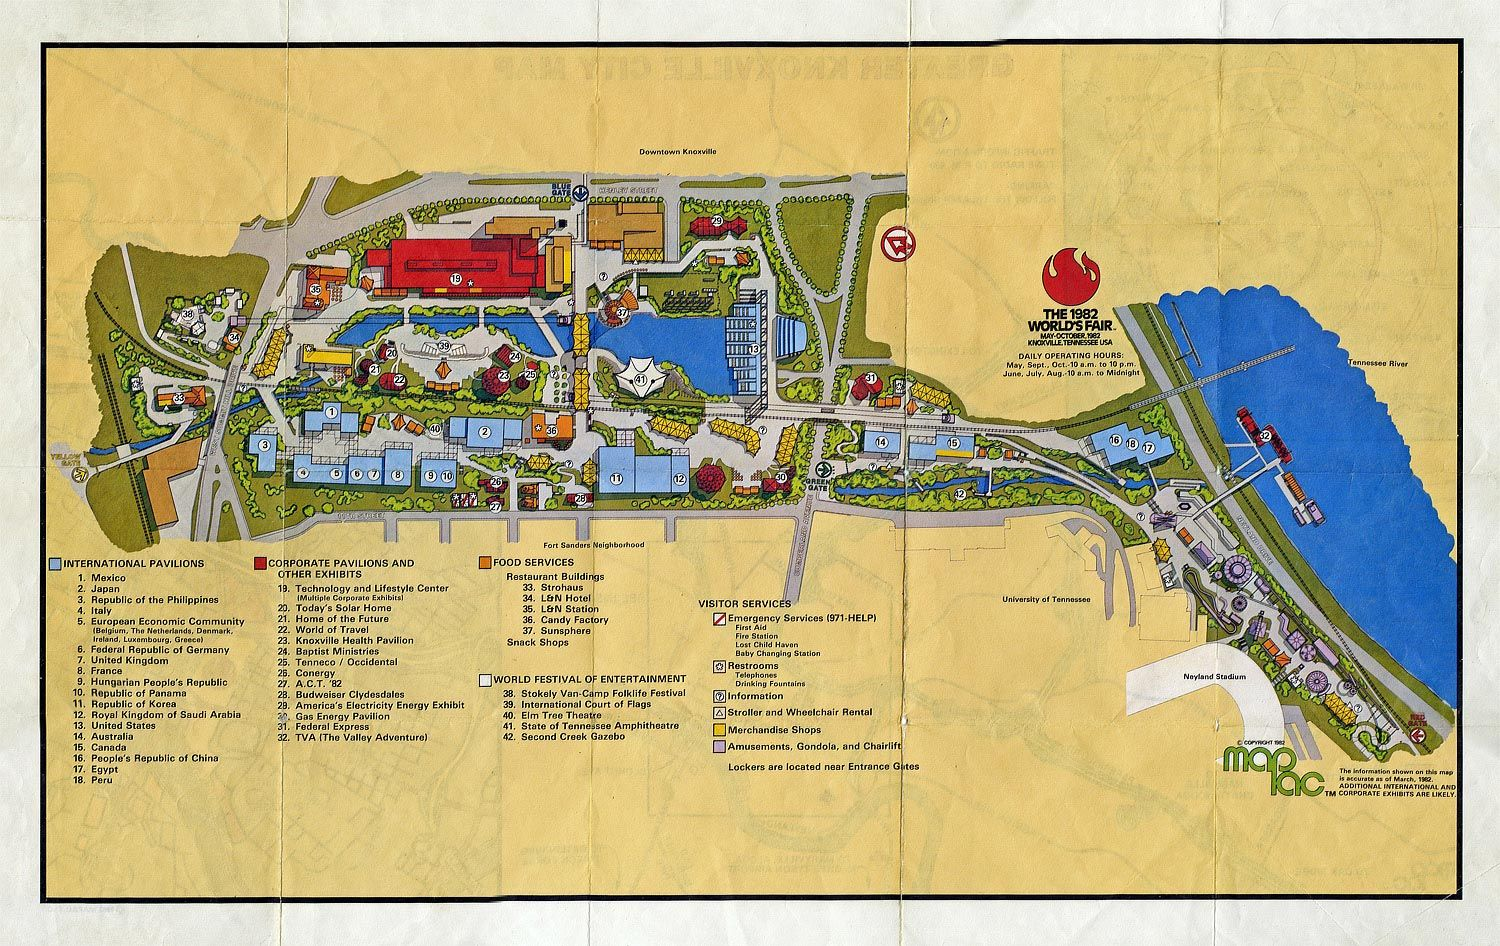 map of the 1982 worlds fair grounds at knoxville tn i went to this